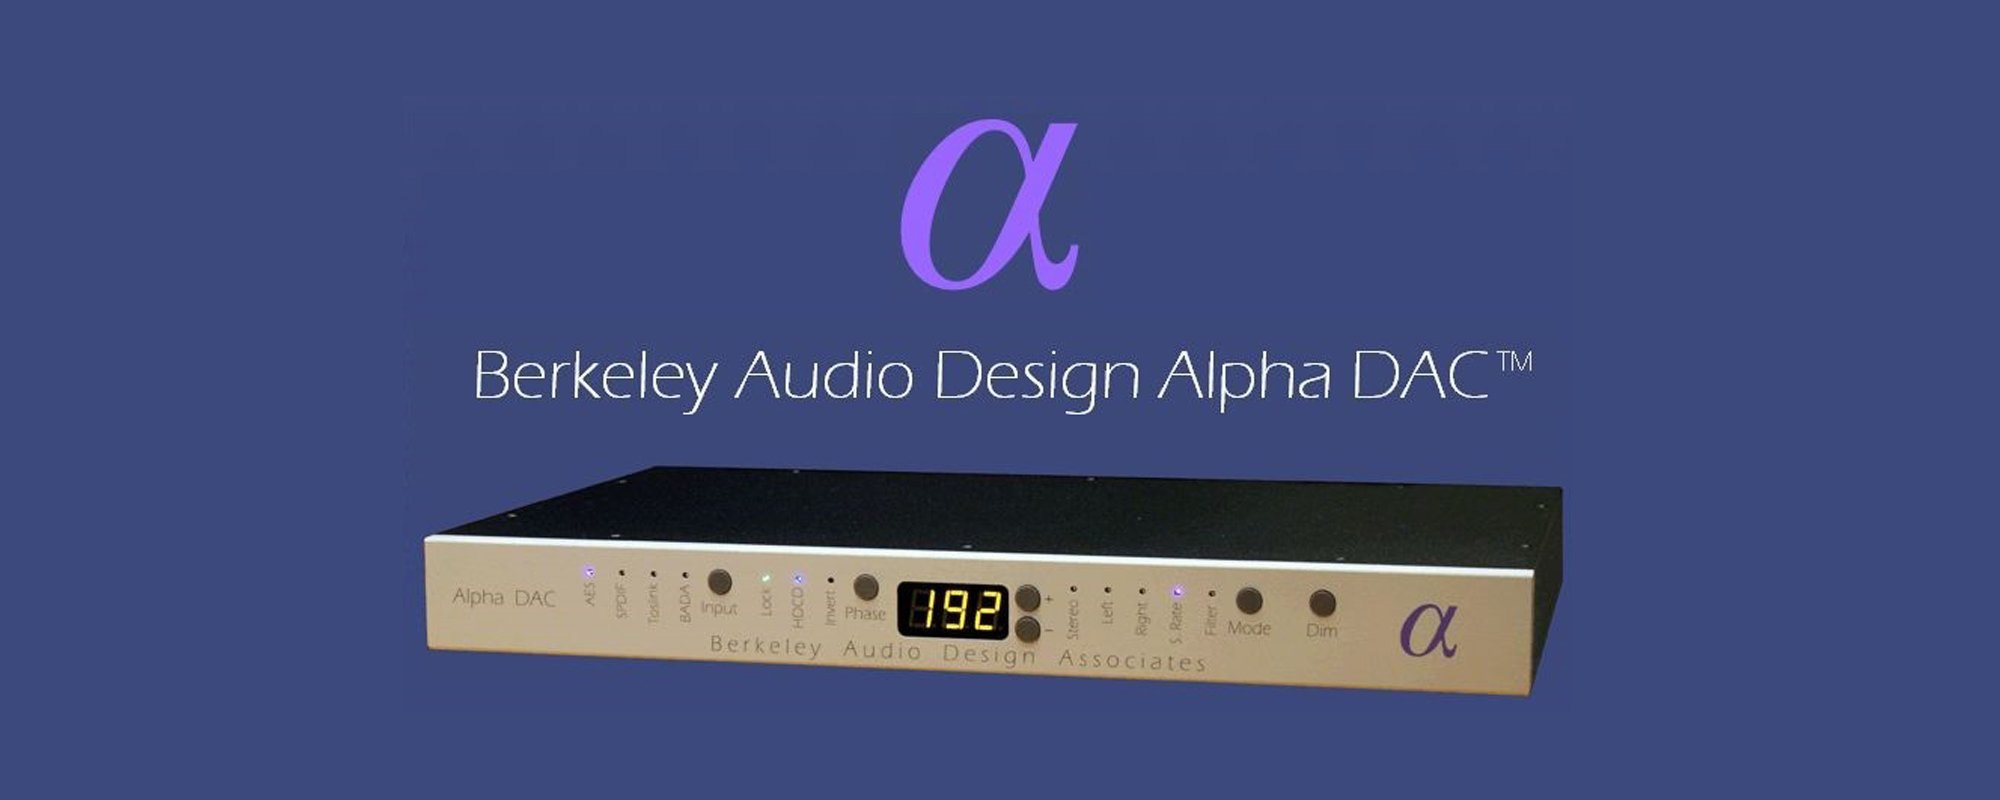 Berkeley Audio Design Banner 2 - Norman Audio